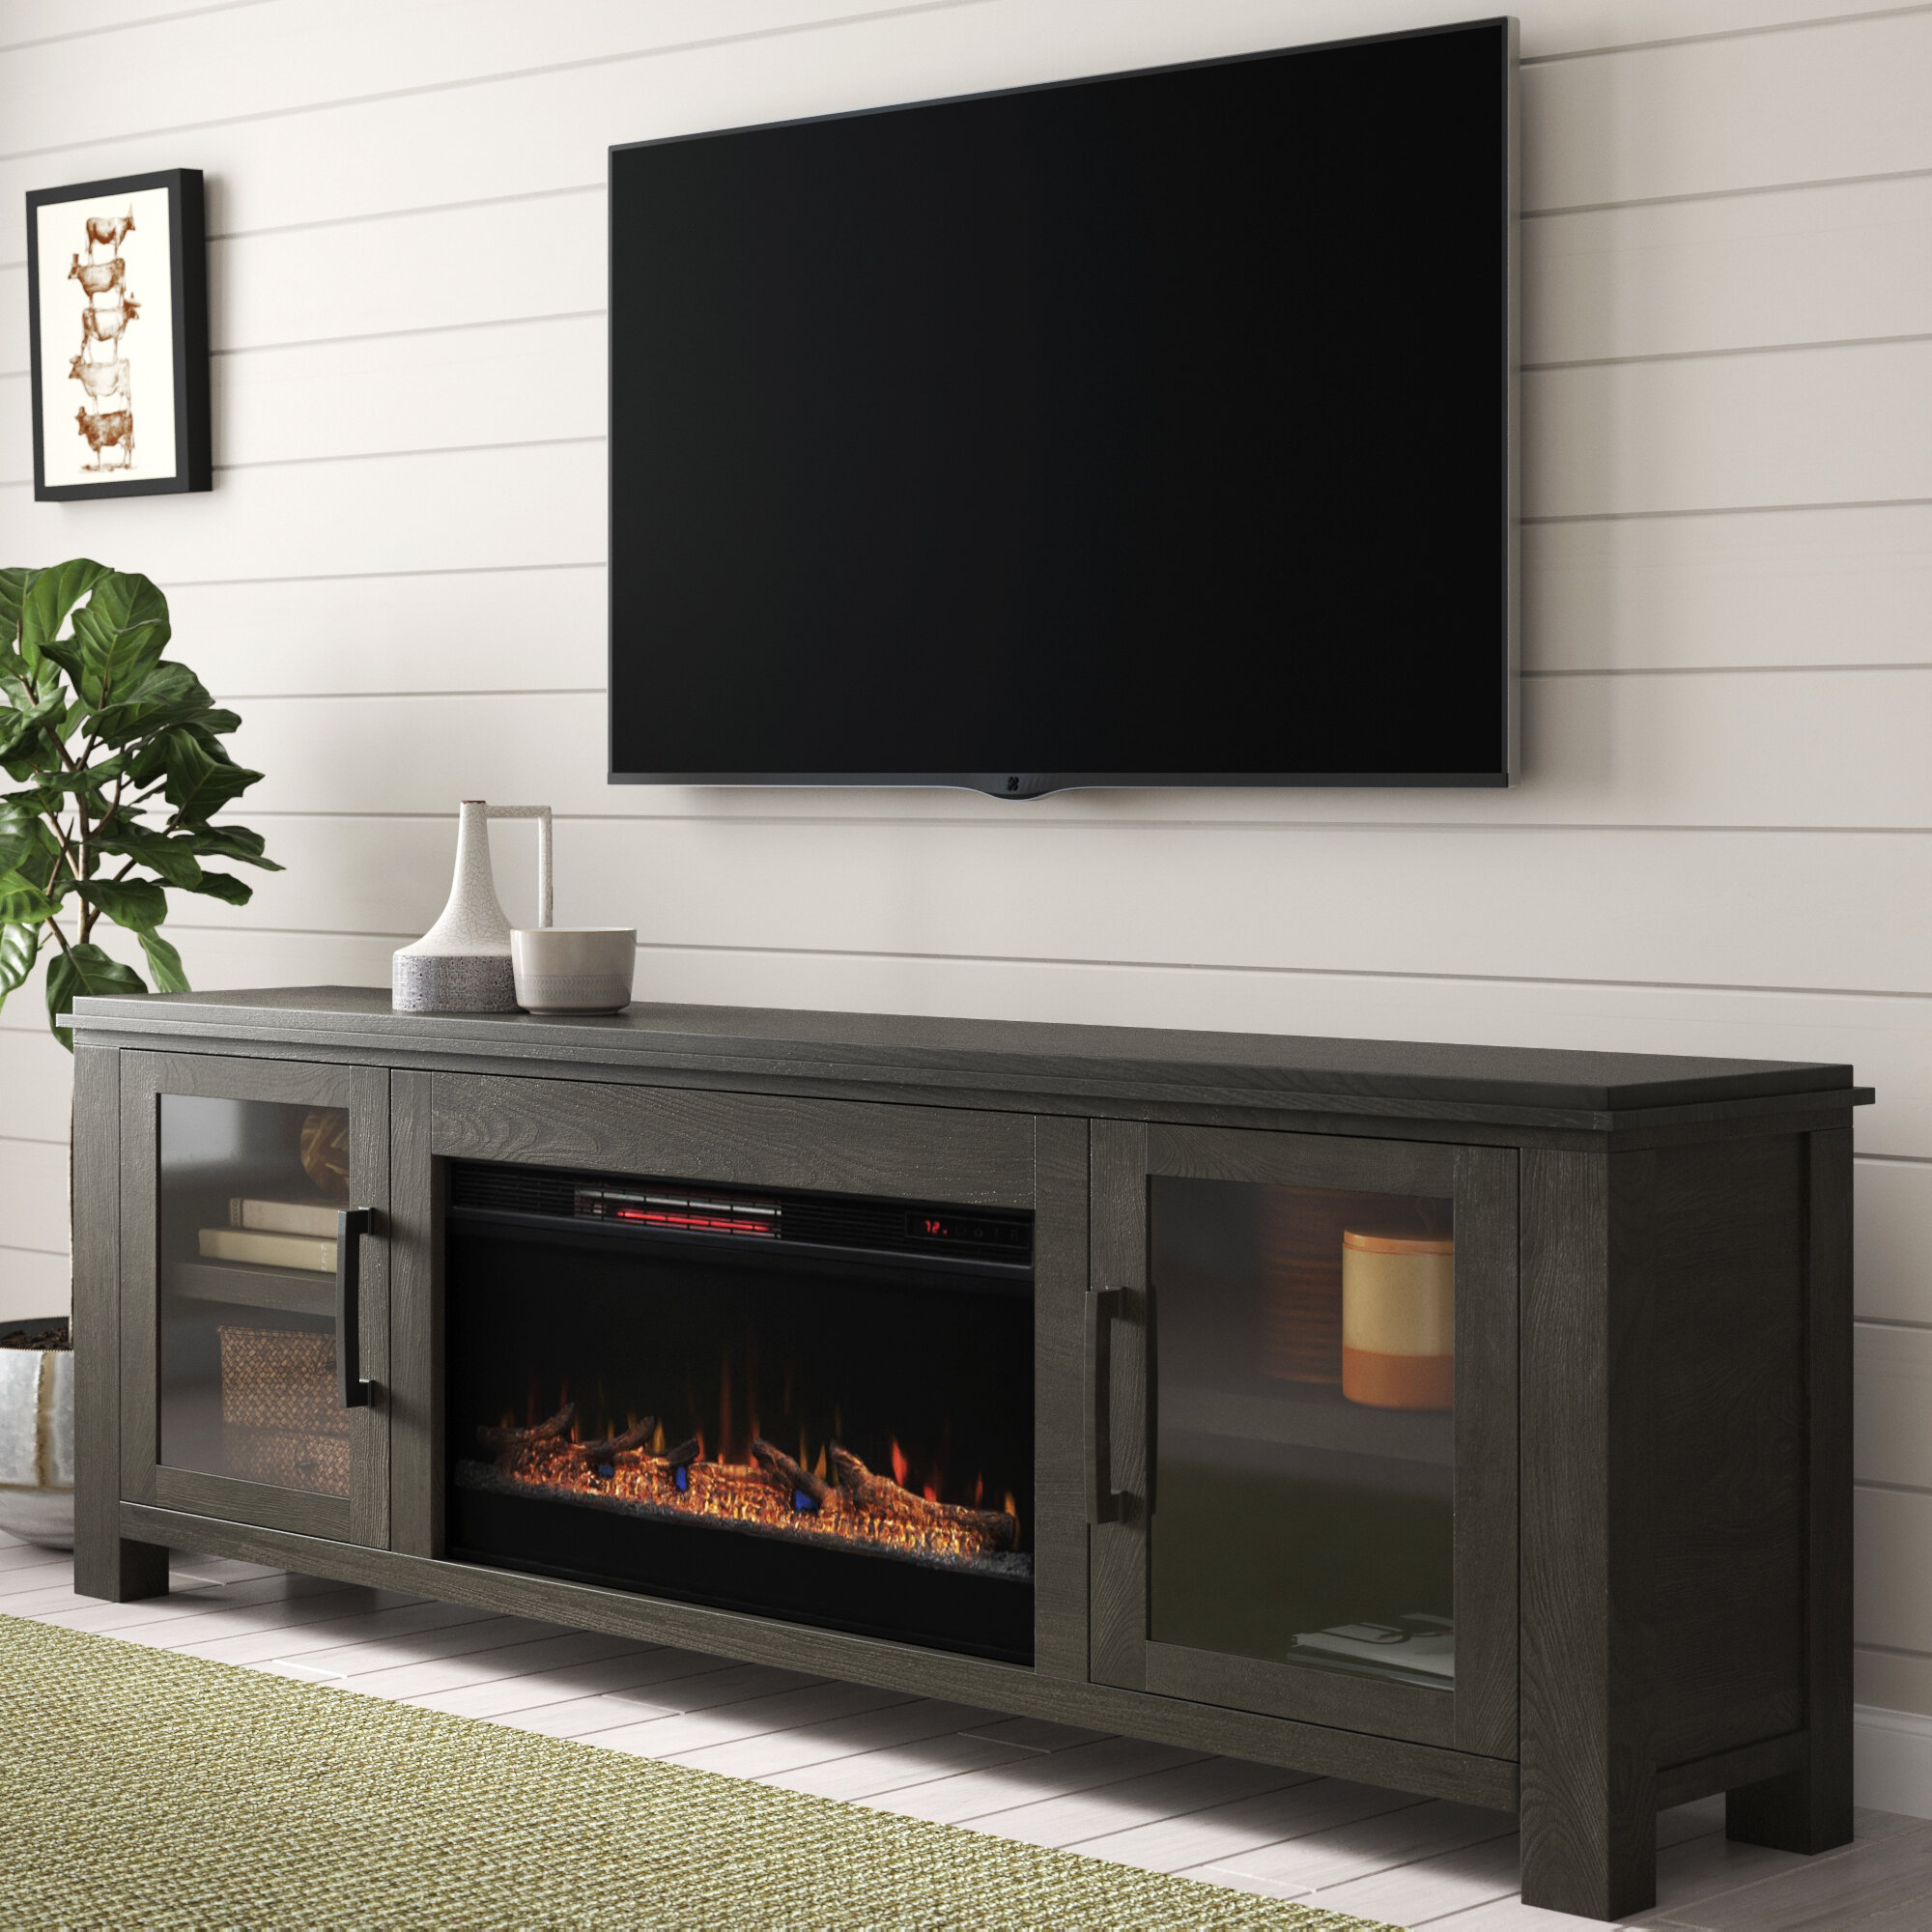 Gracie Oaks Cloyne Tv Stand For Tvs Up To 85 With Electric